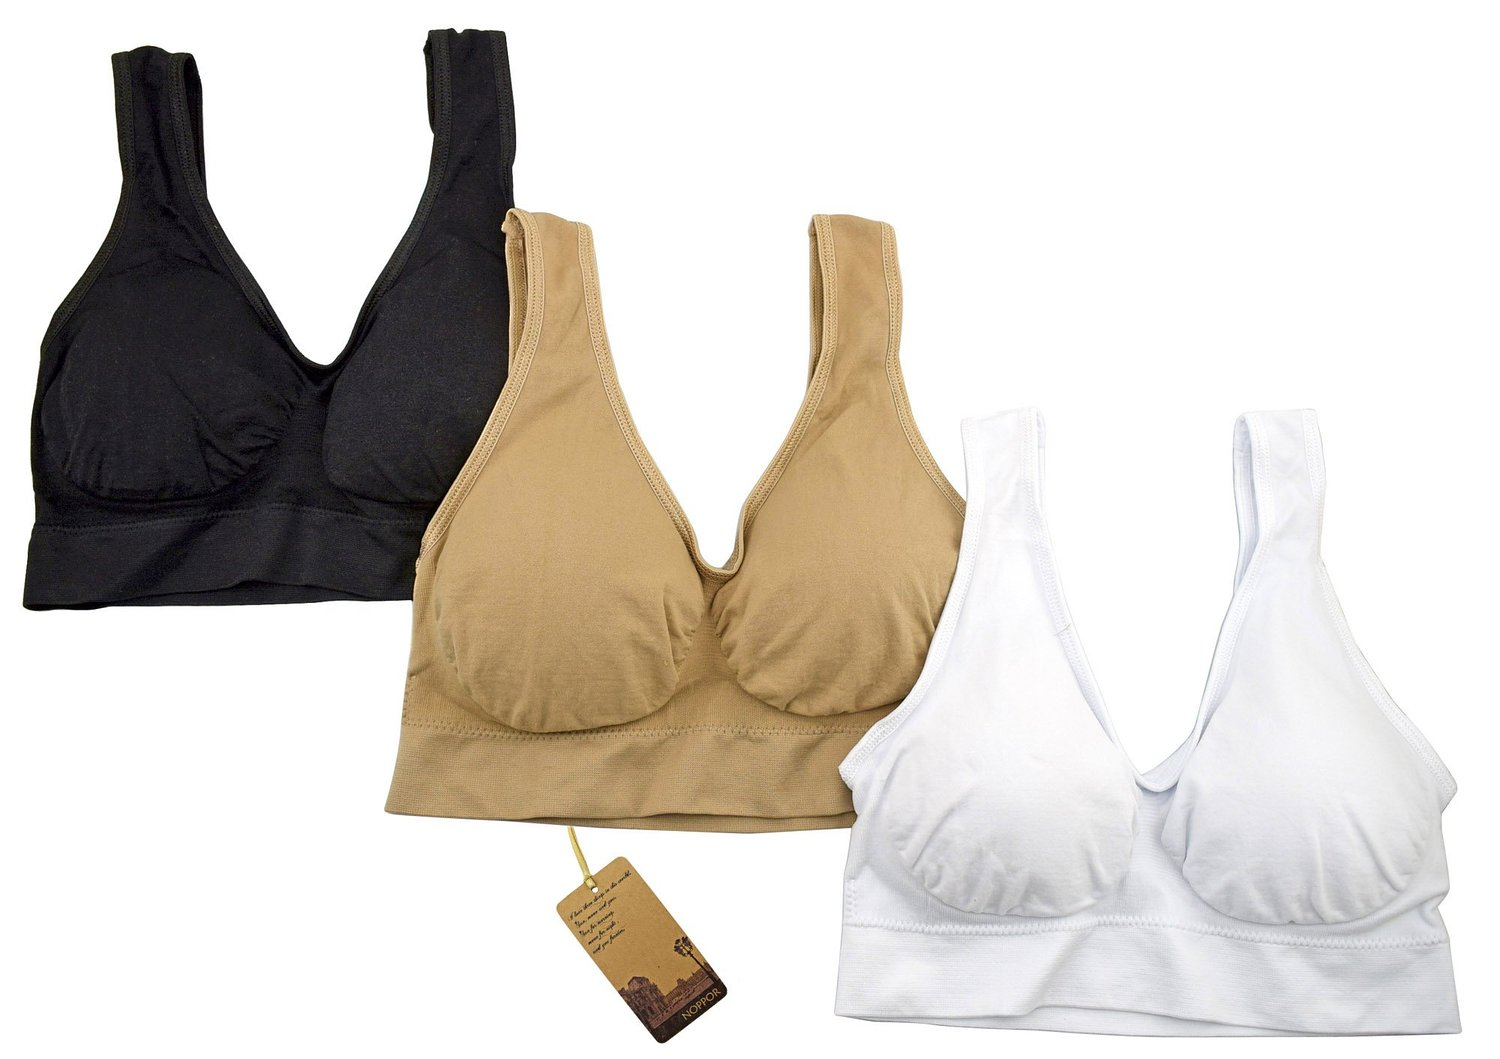 f21553a92454c Get Quotations · Wirefree Sports Bra Seamless Yoga Bra with Removable Pad  Comfort Body Shaping